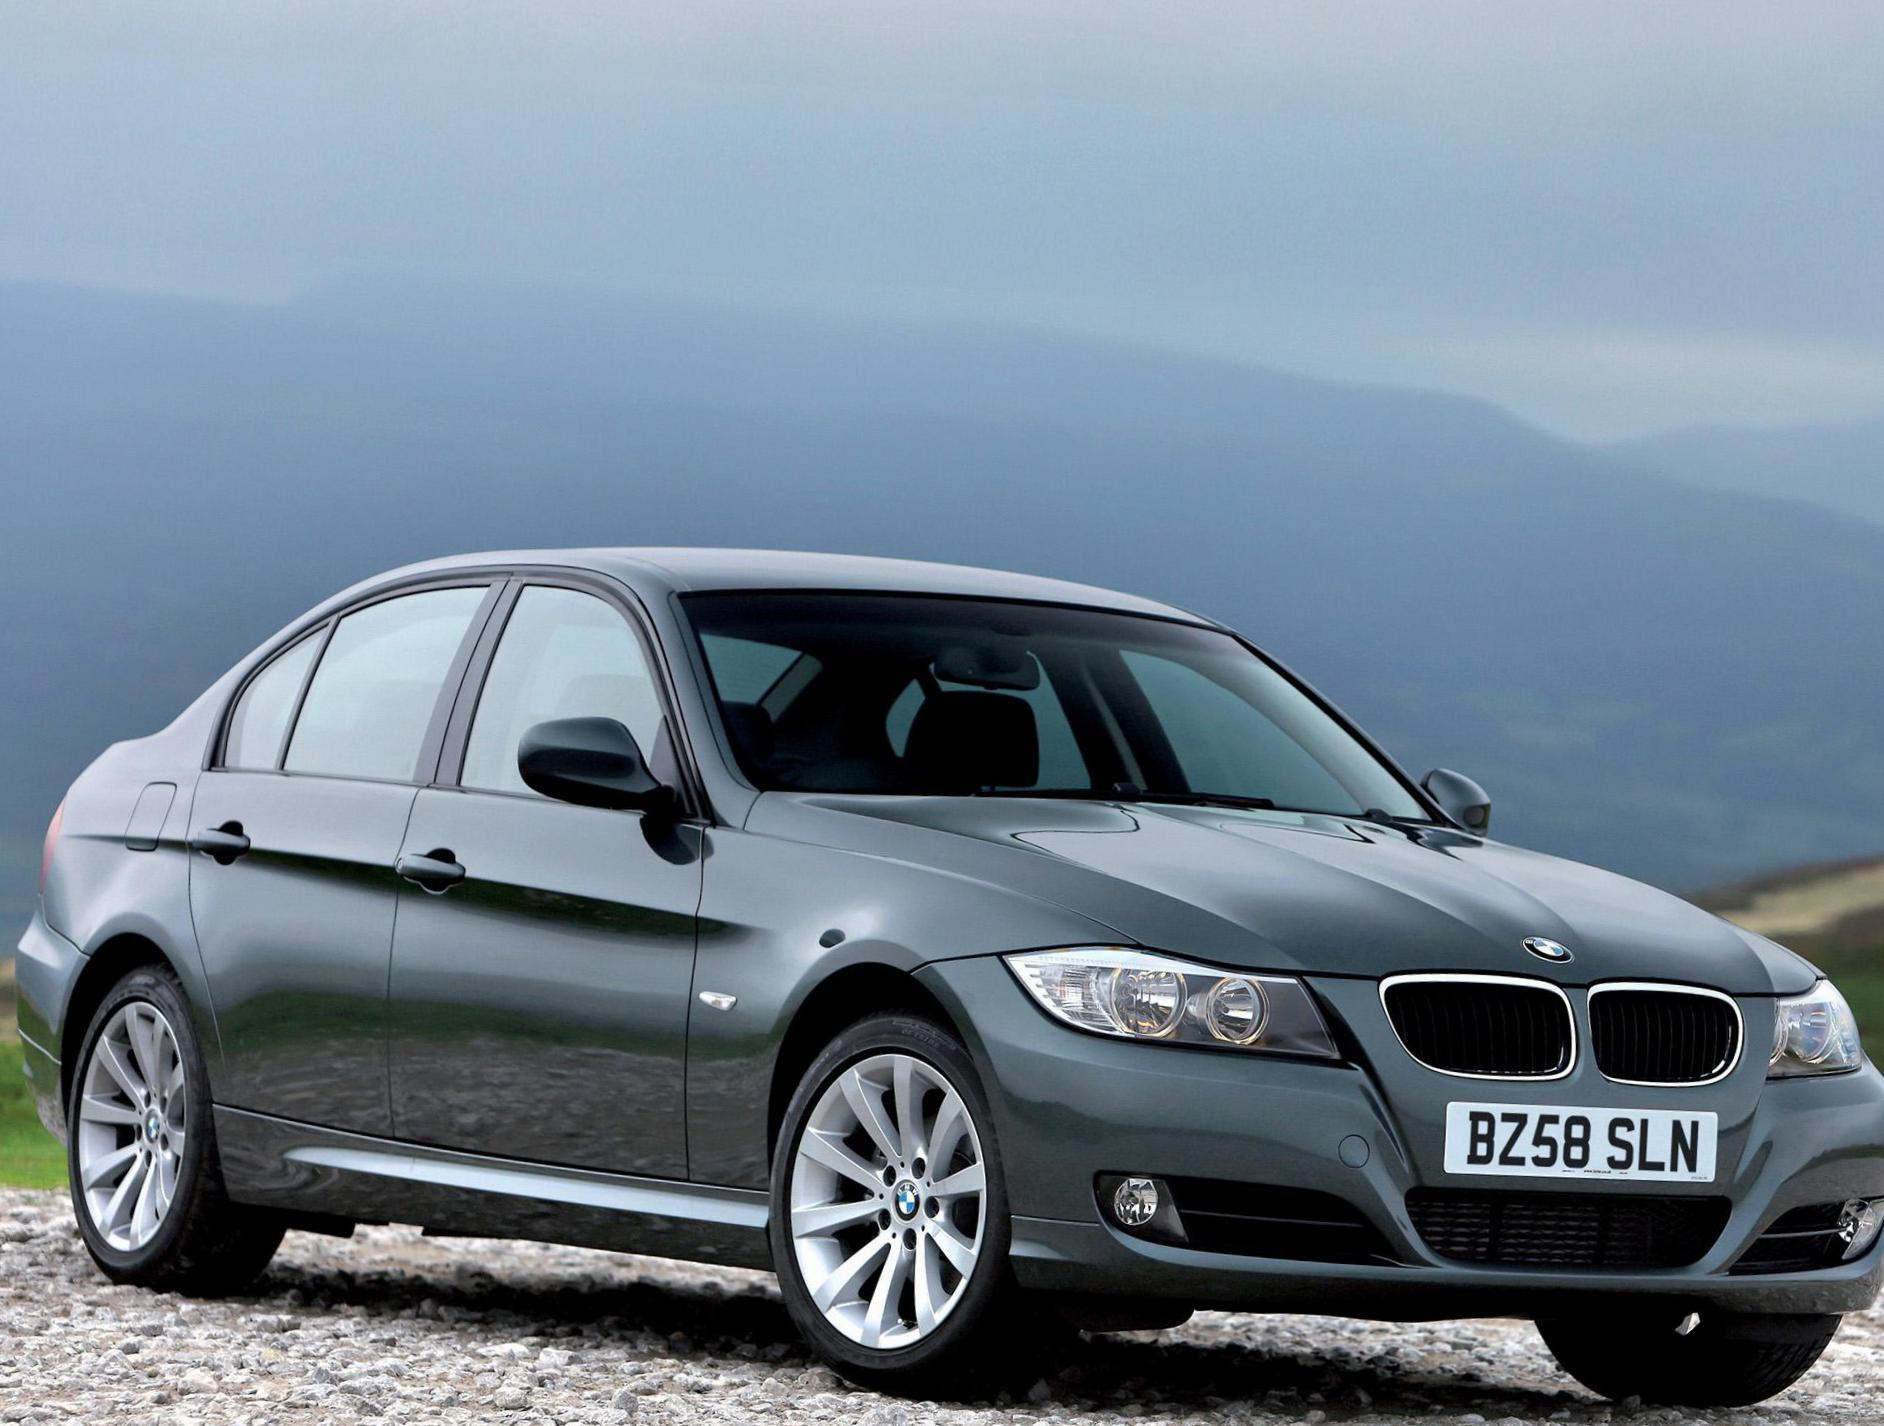 BMW 3 Series Sedan (E90) review 2010